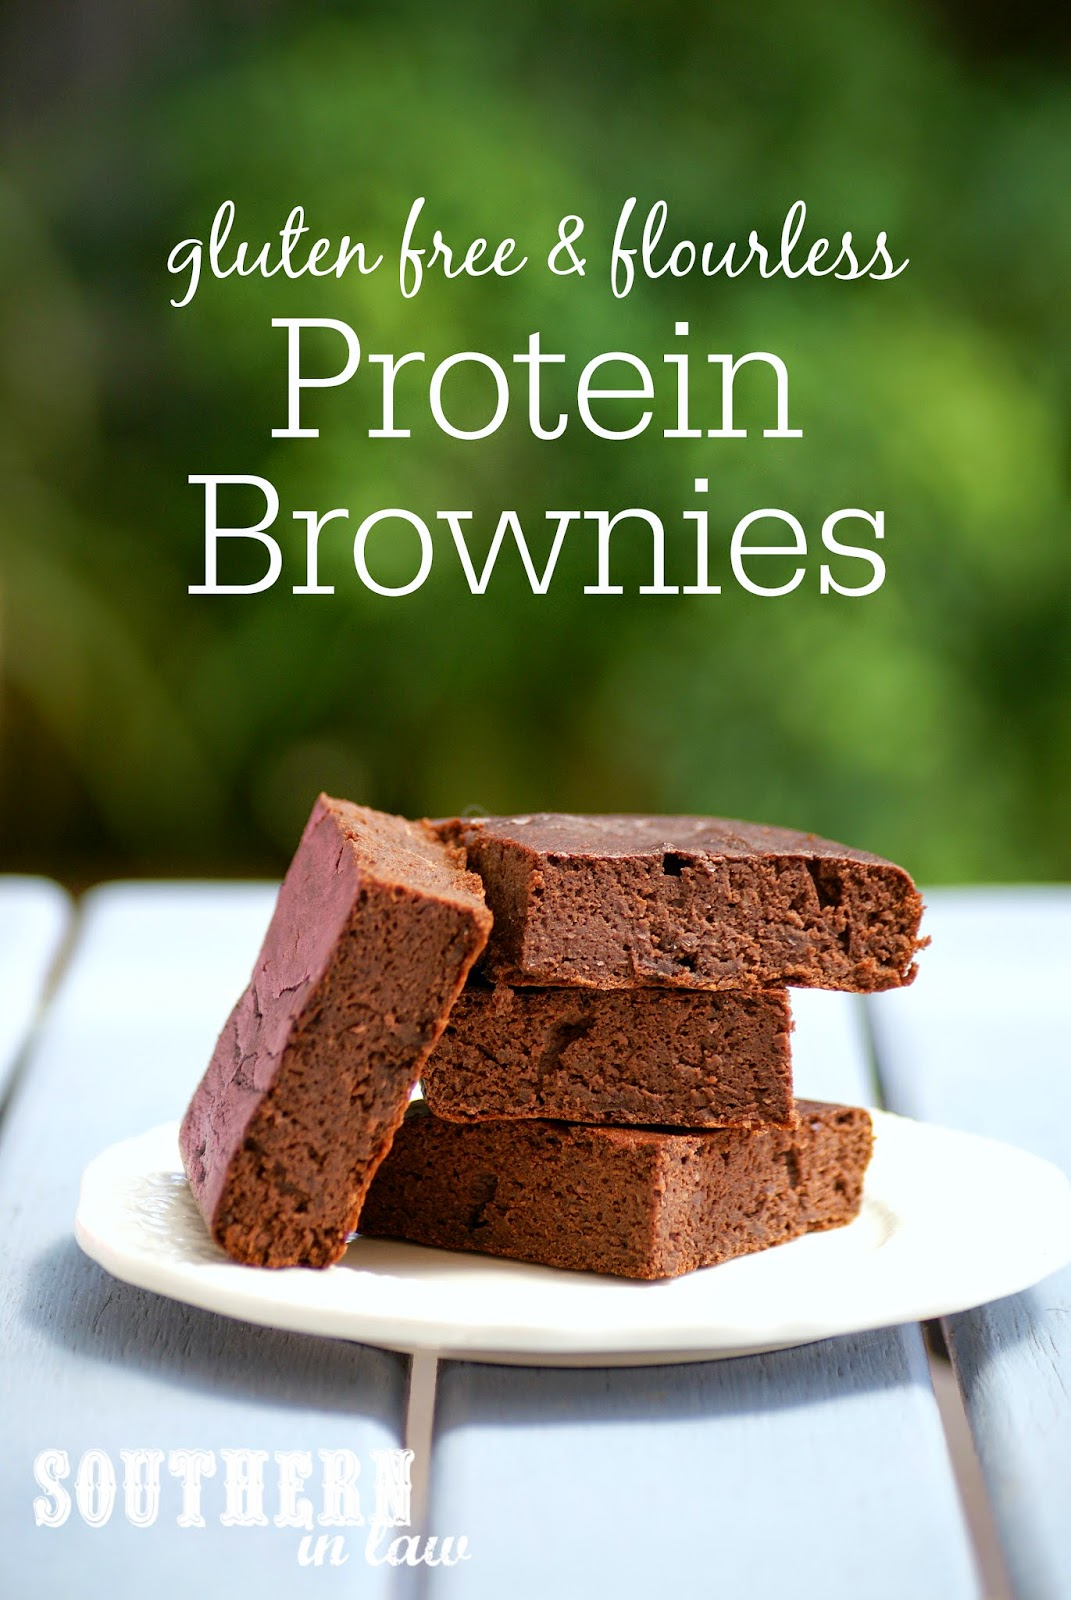 Healthy Protein Brownies | gluten free, low fat, low carb, flourless, clean eating recipe, high protein